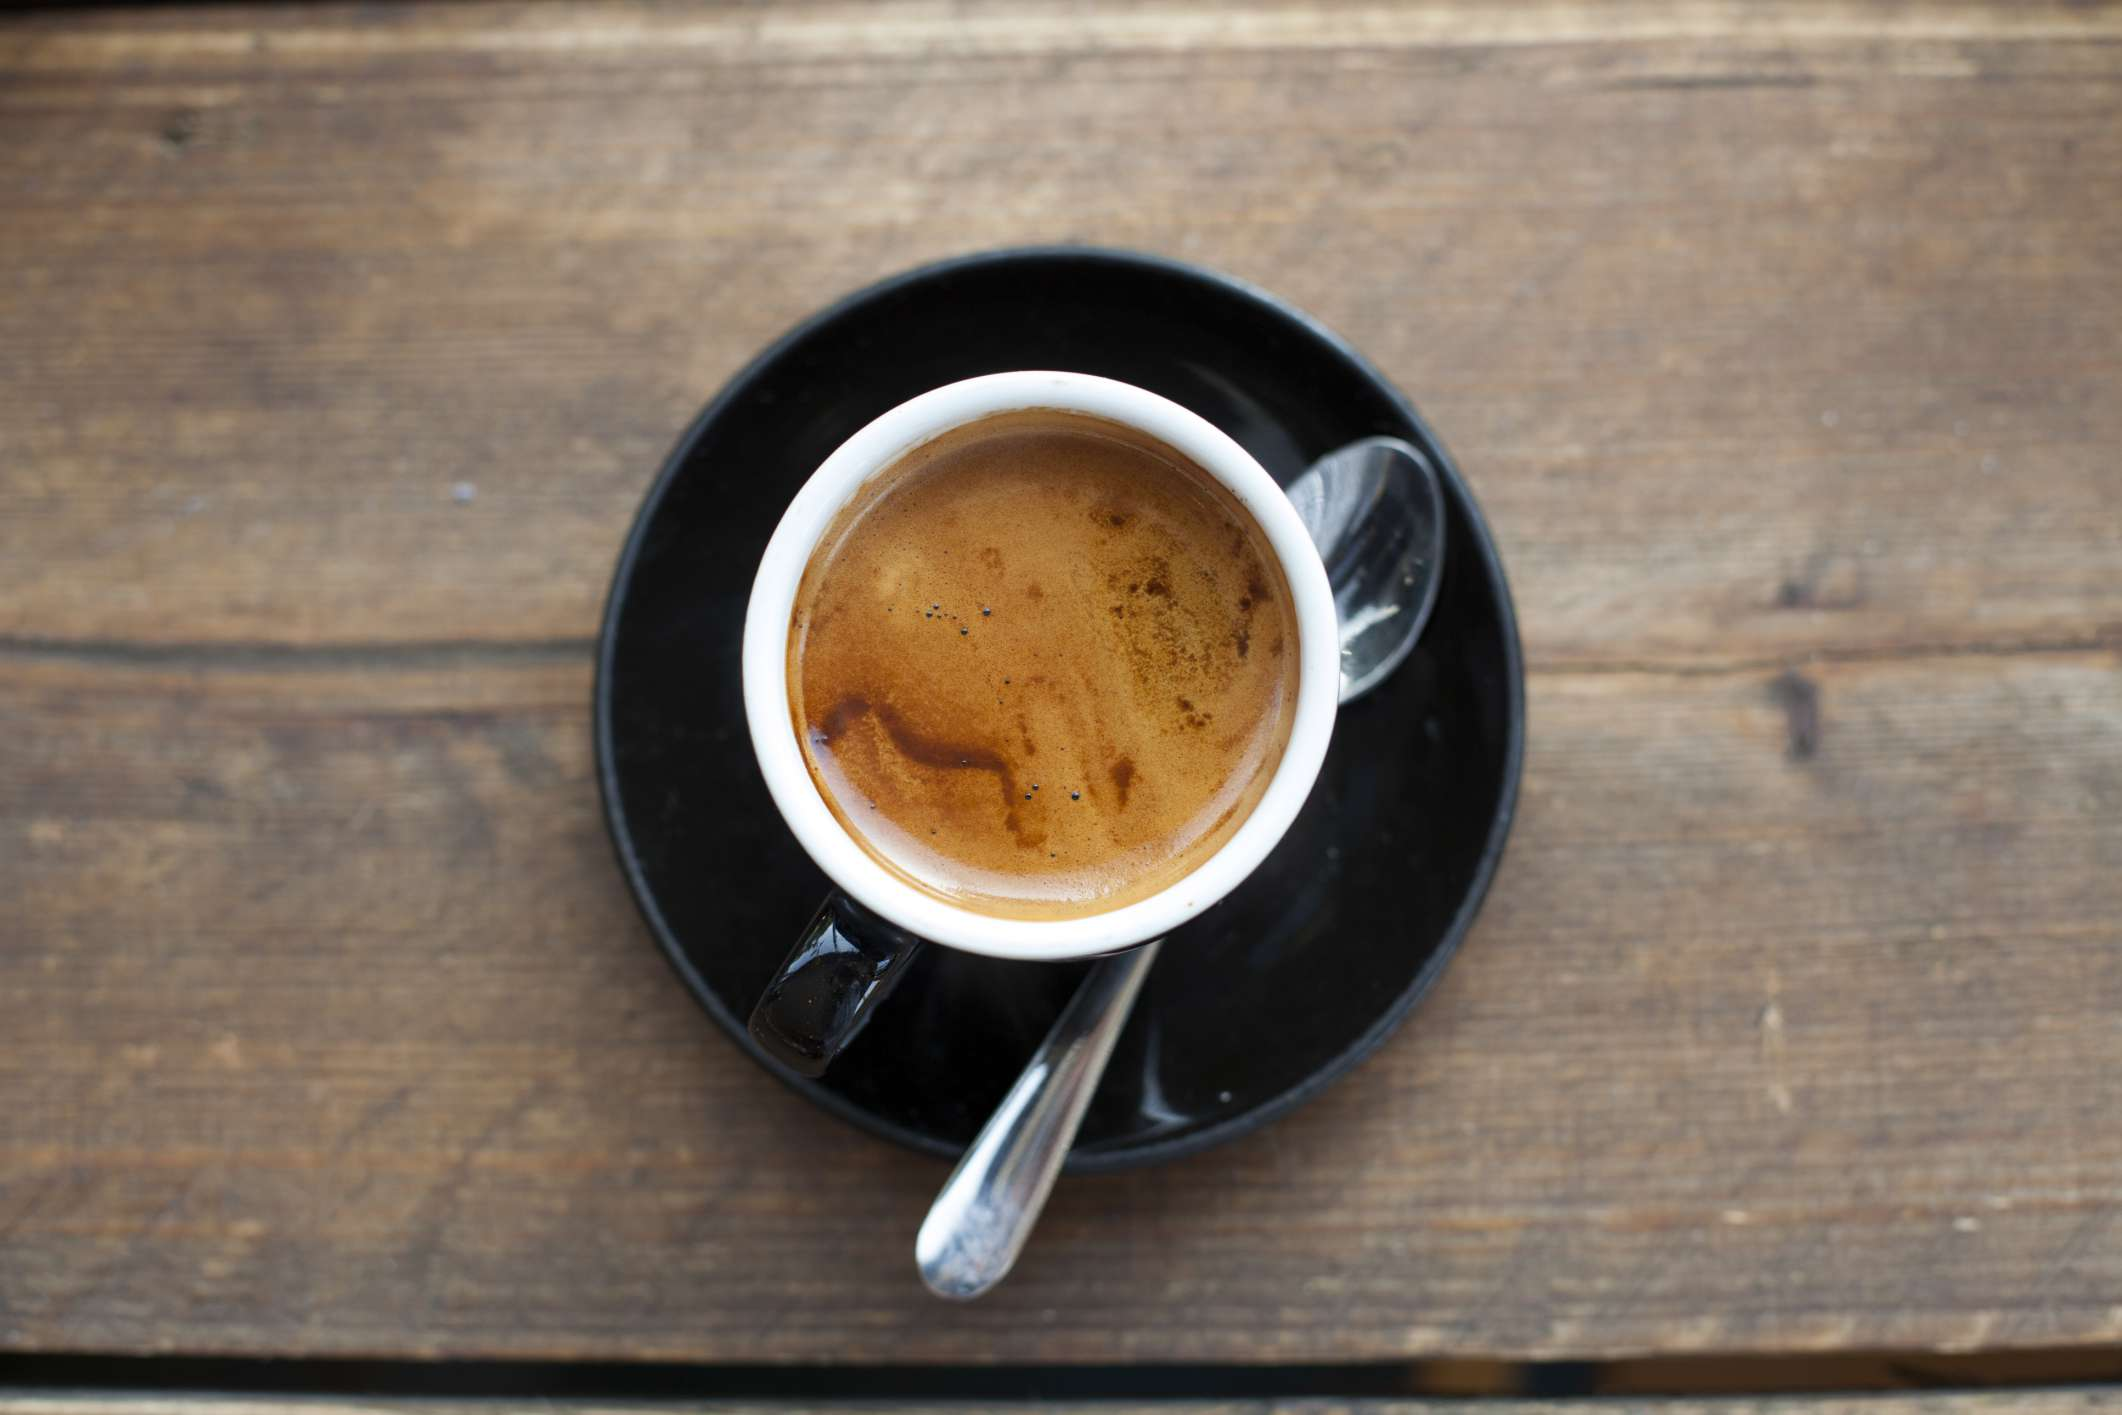 Cup of fleshly brewed espresso with saucer and spoon on wooden table